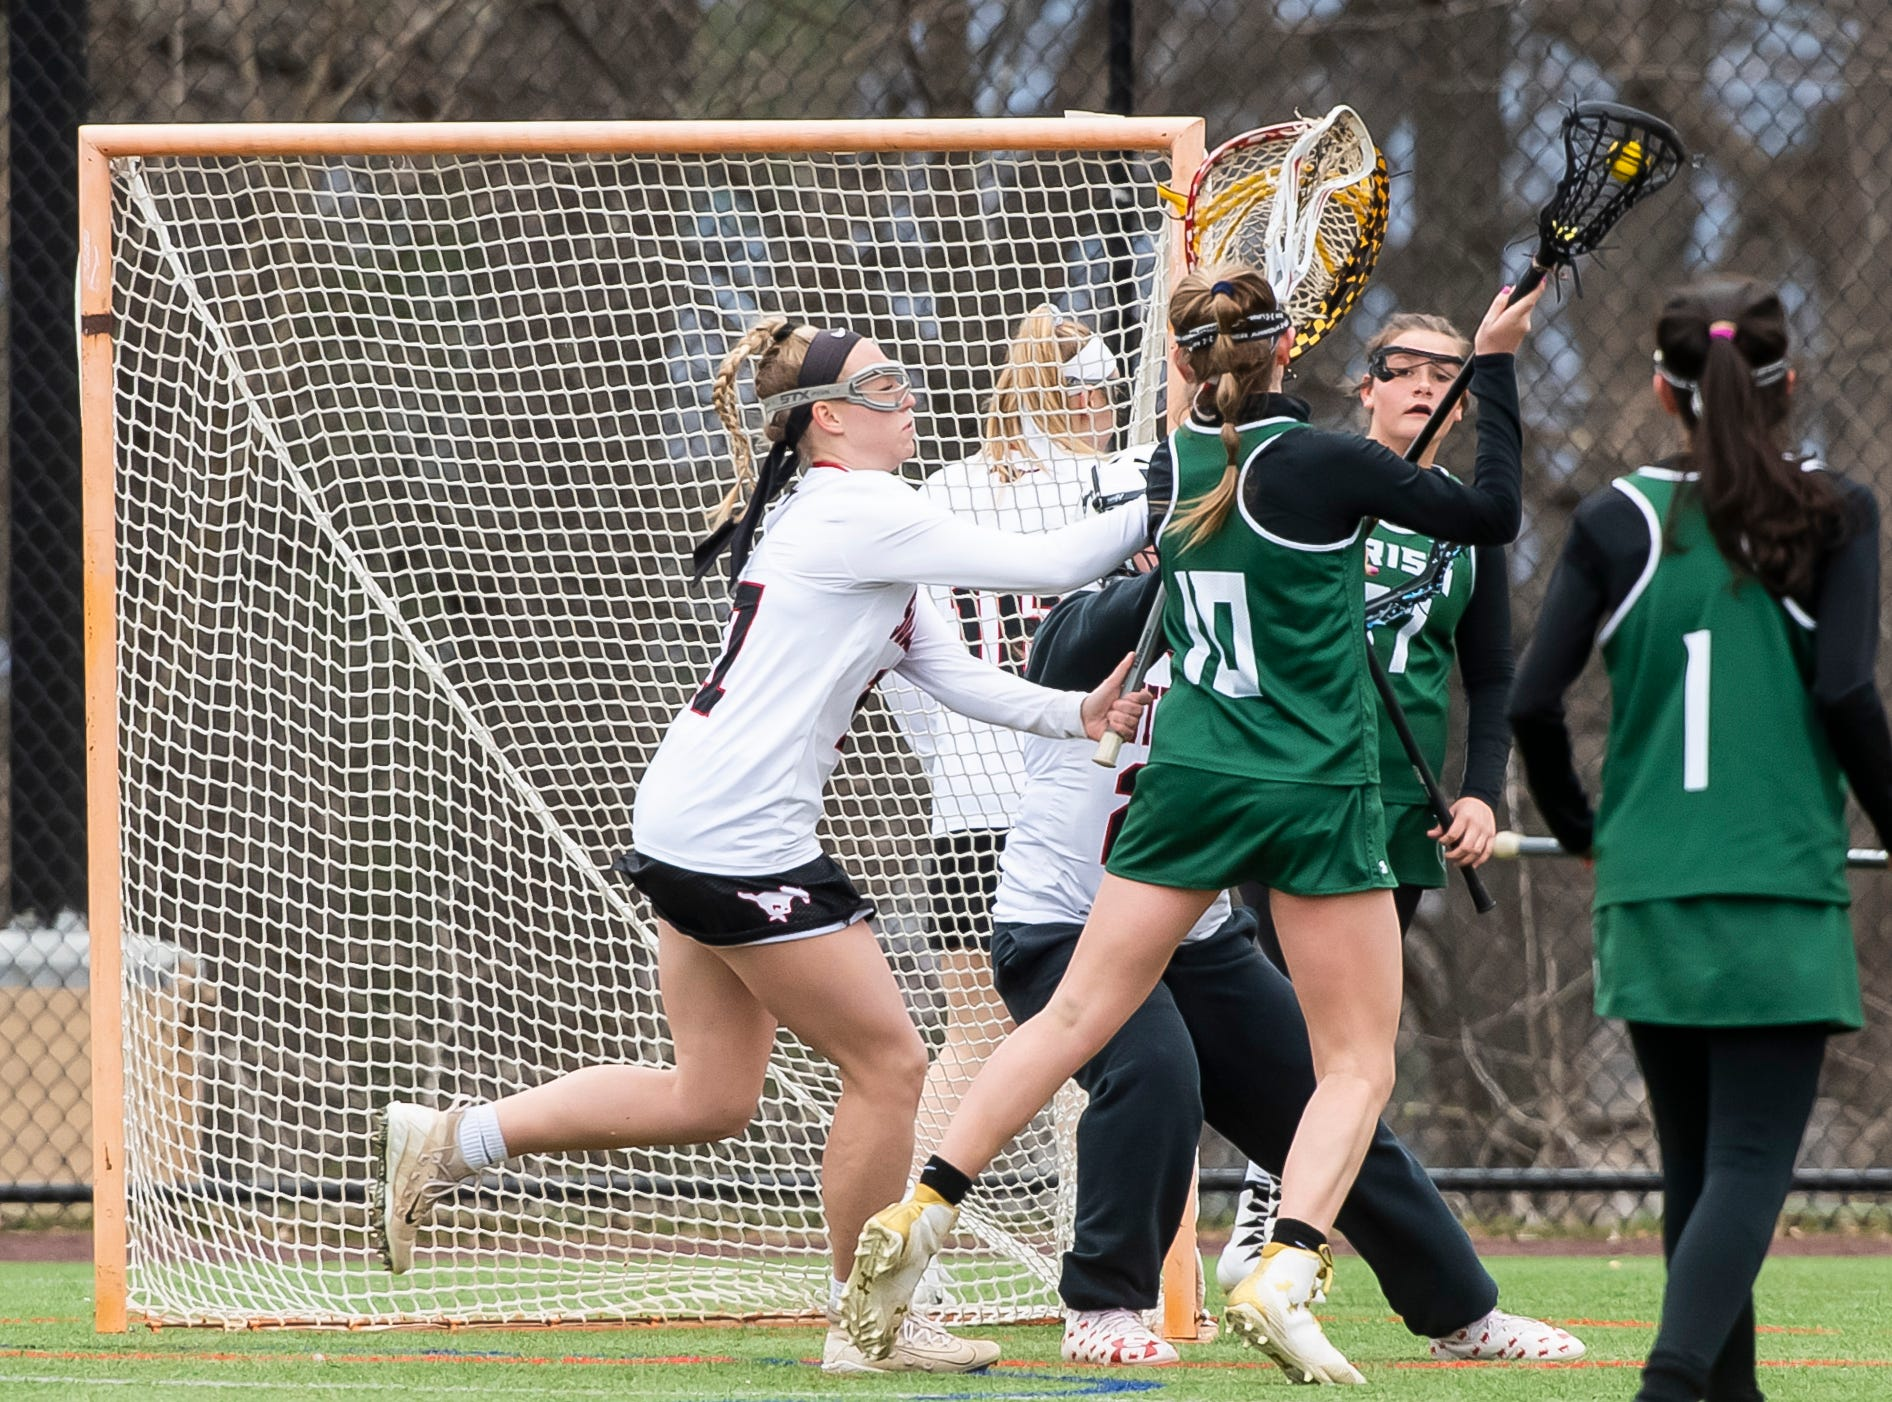 York Catholic's Sydney Mentzer (10) shoots and scores during a YAIAA lacrosse game against South Western on Tuesday, April 2, 2019. York Catholic won 19-7 and improved to 5-0.